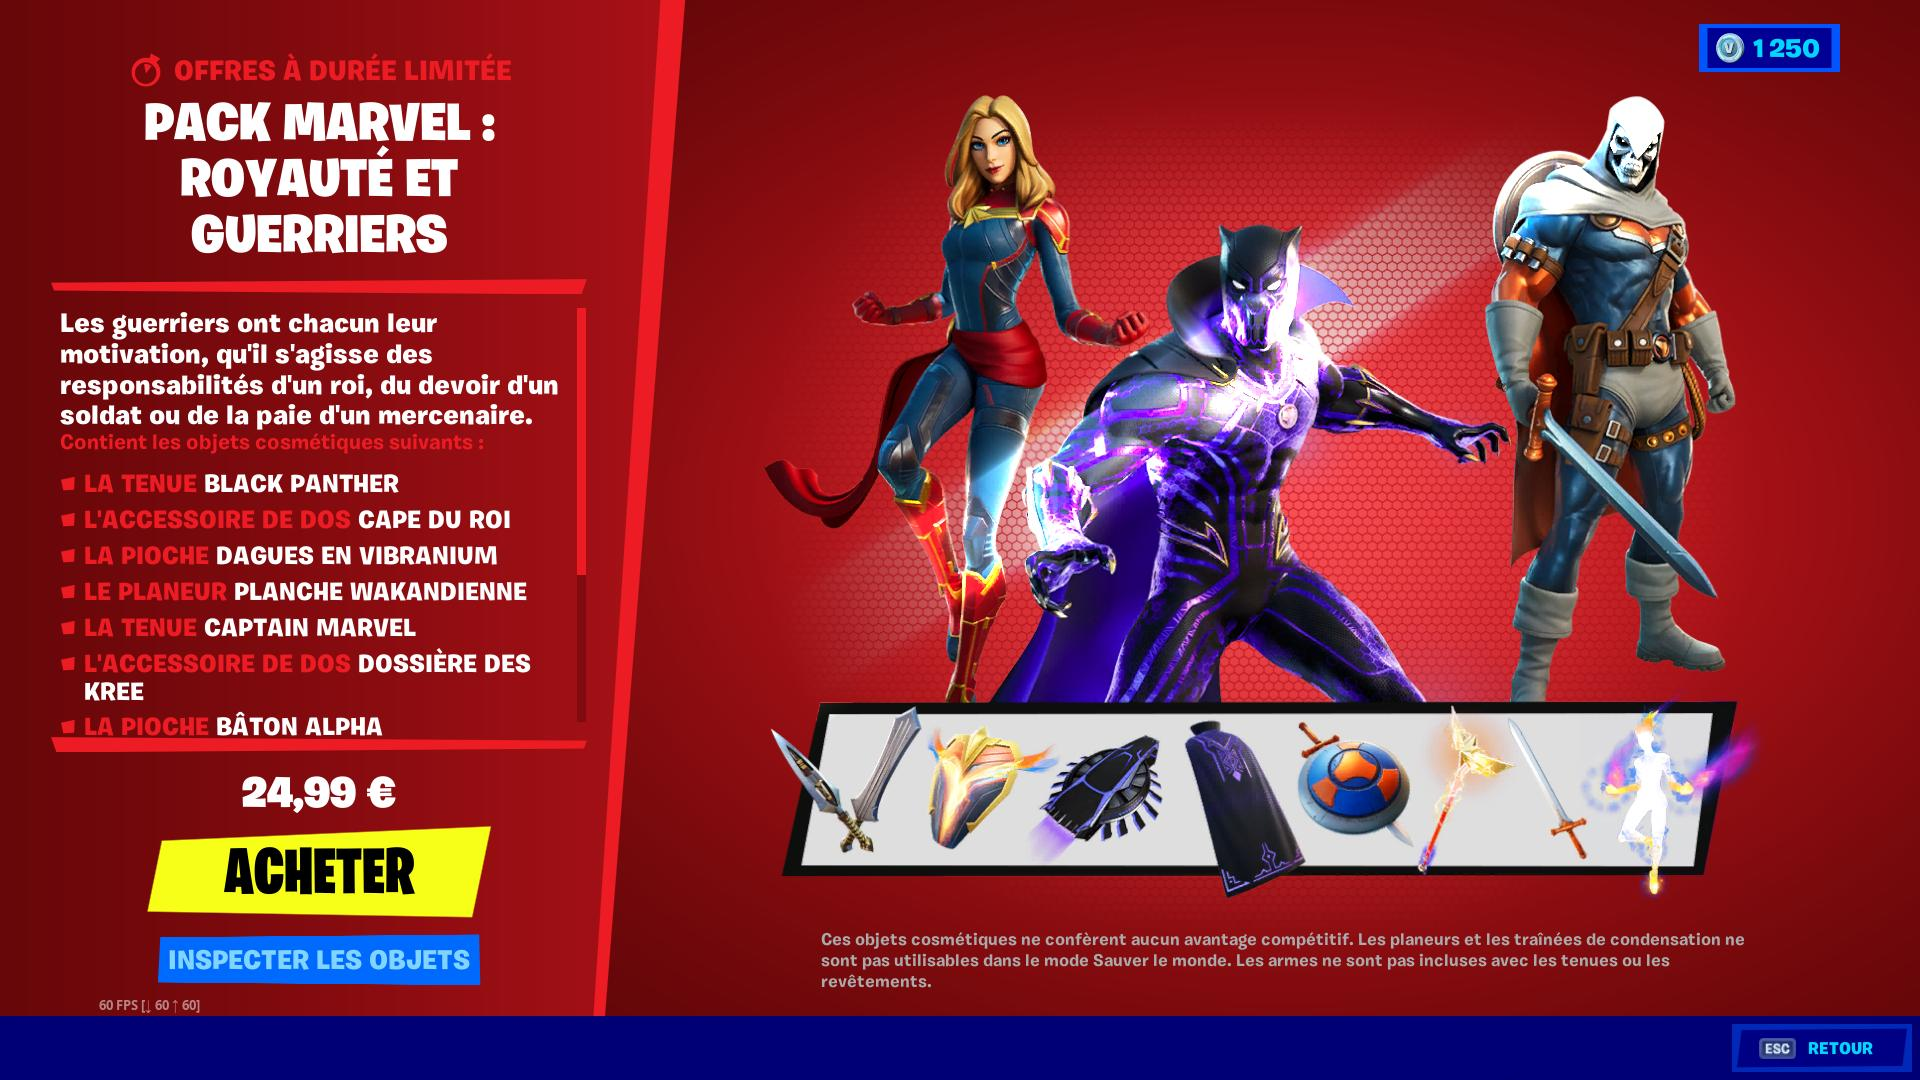 pack-marvel-royaute-guerrier-black-panther